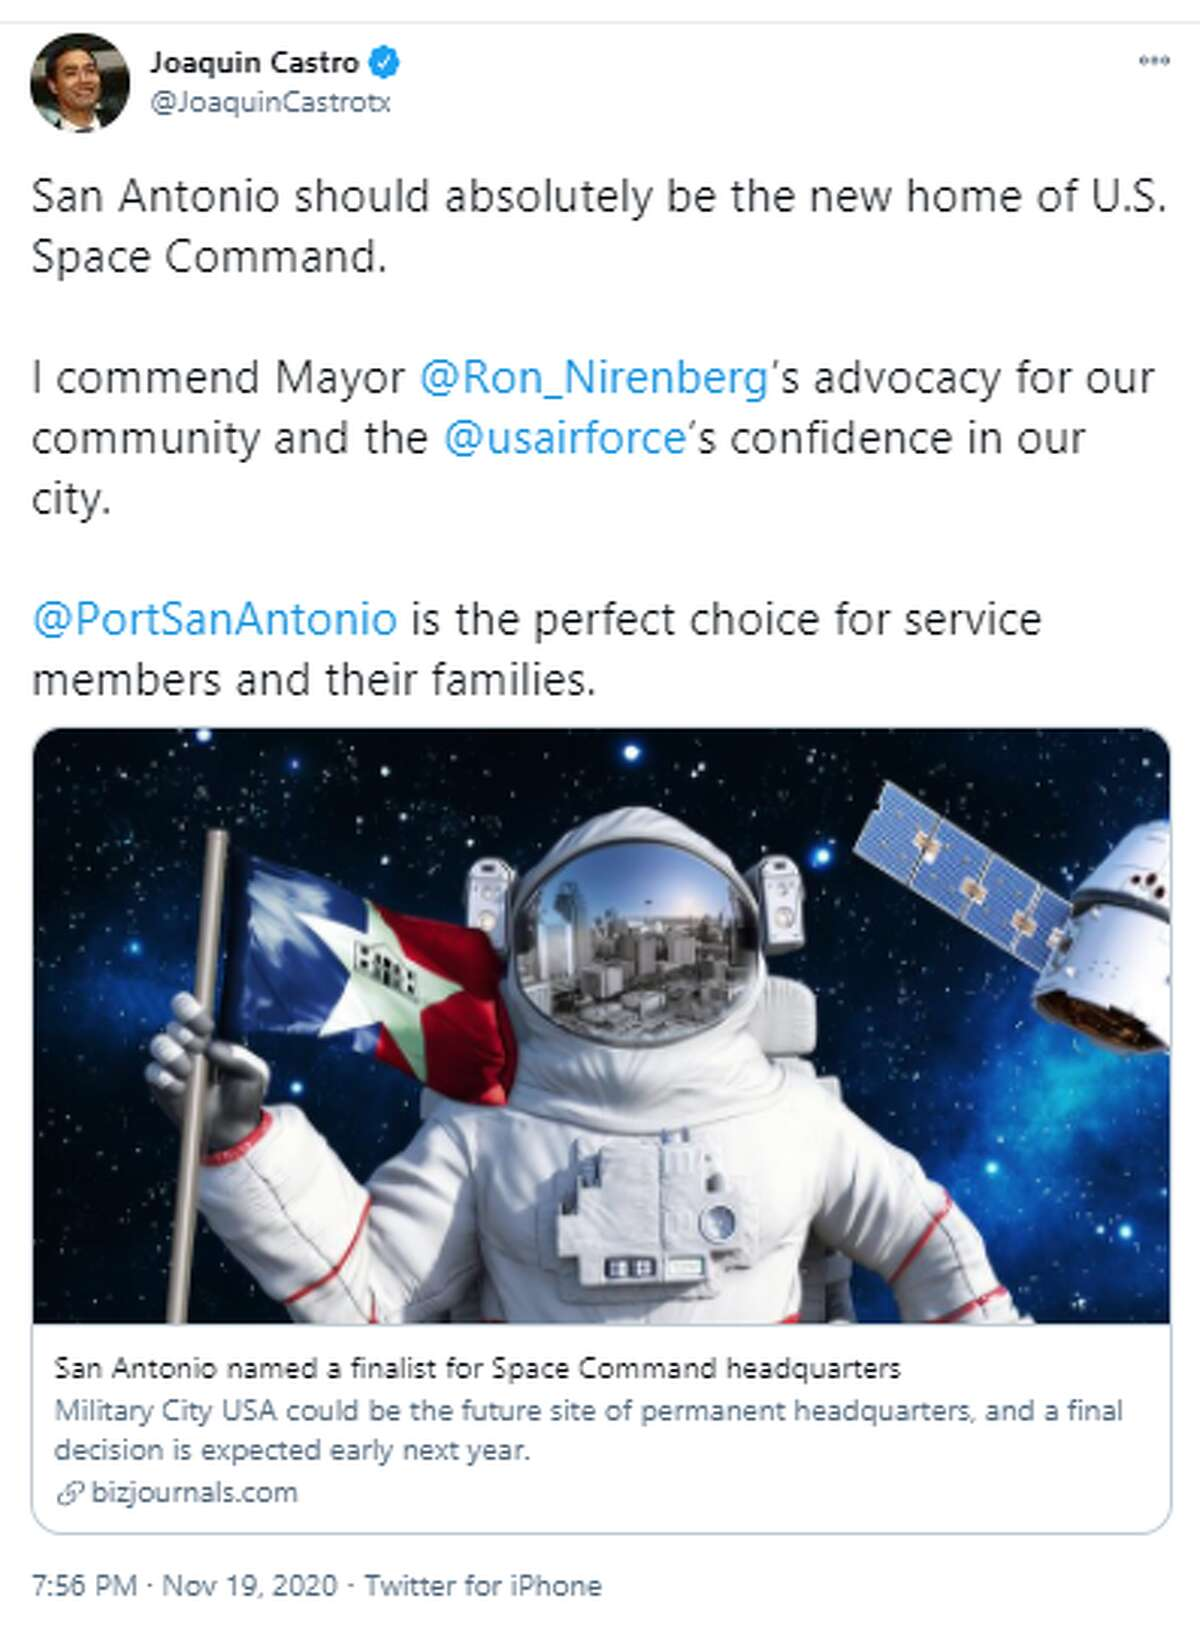 @JoaquinCastrotx: San Antonio should absolutely be the new home of U.S. Space Command. I commend Mayor @Ron_Nirenberg's advocacy for our community and the @usairforce's confidence in our city. @PortSanAntonio is the perfect choice for service members and their families.